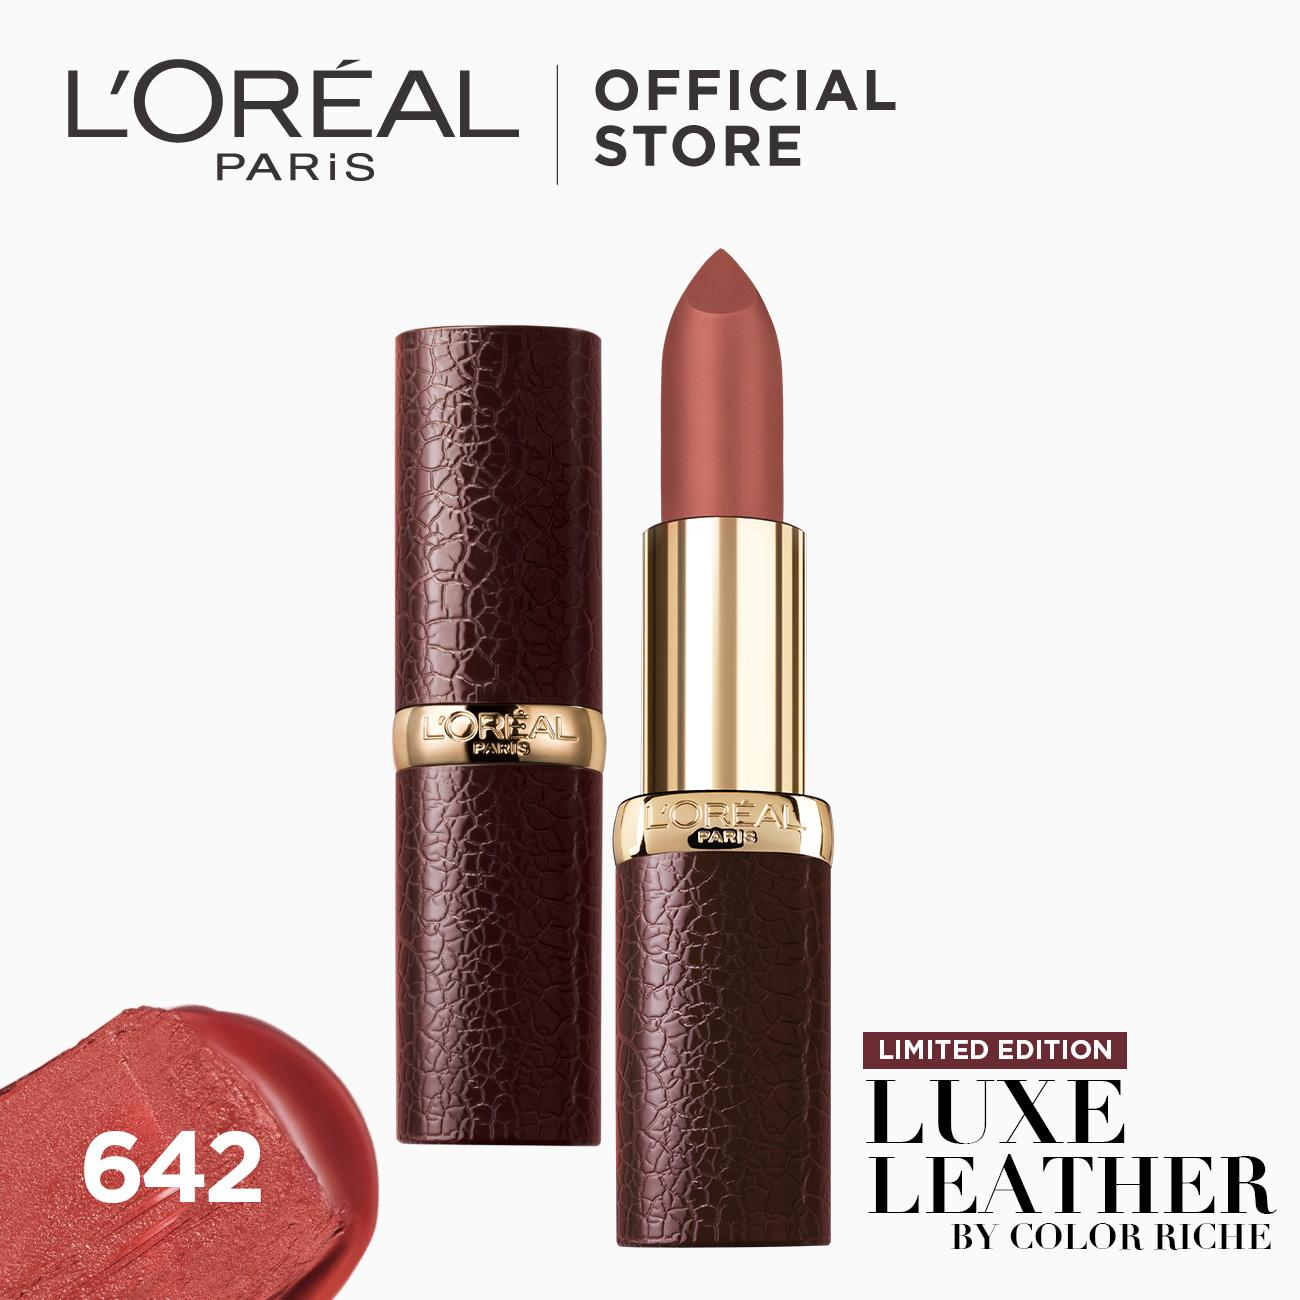 Loreal Paris Lipstick Philippines Lip Color For City Chic Liner Marsala Riche Luxe Leather By